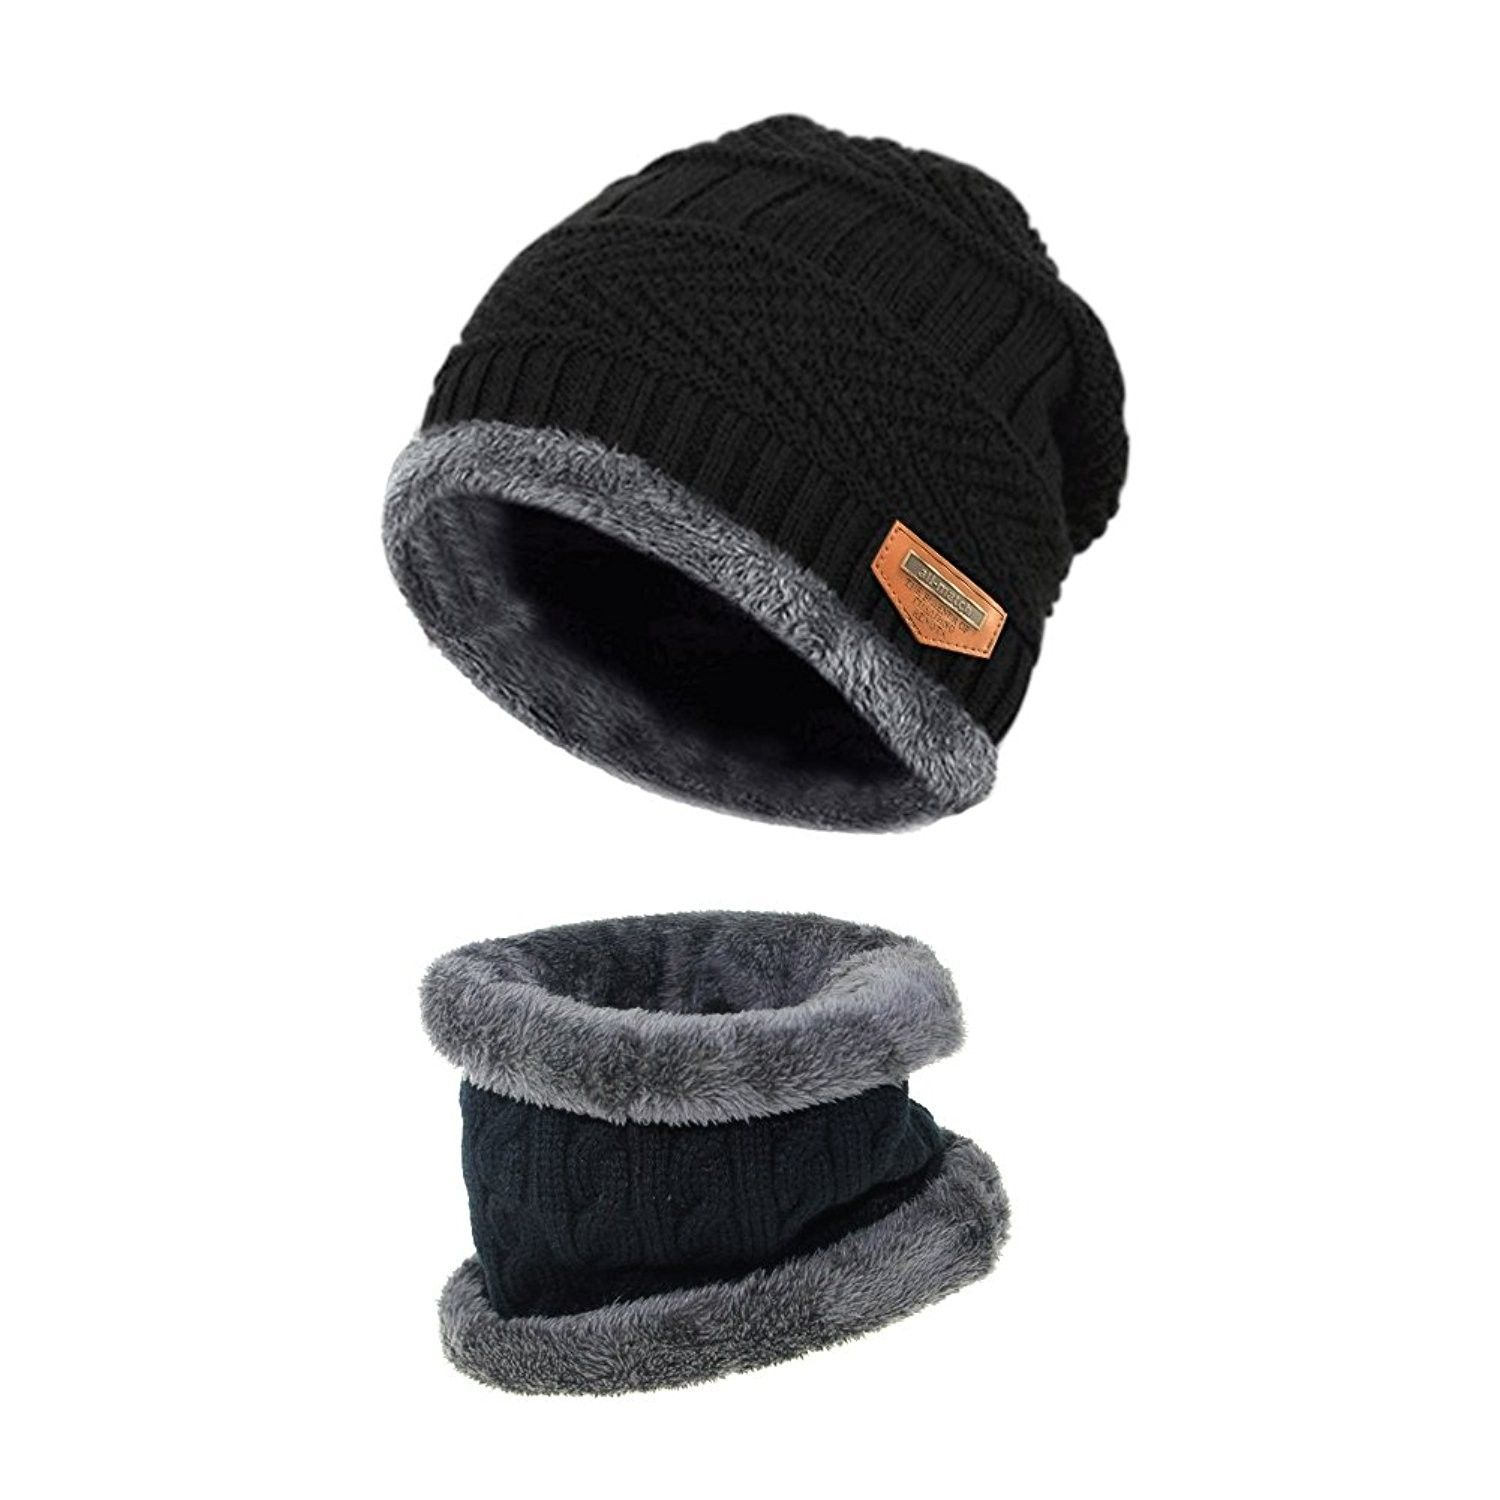 c2f9935c3 Beanie Hat Scarf Set Thick Knit Hat Warm Fleece Lined Scarf Winter ...